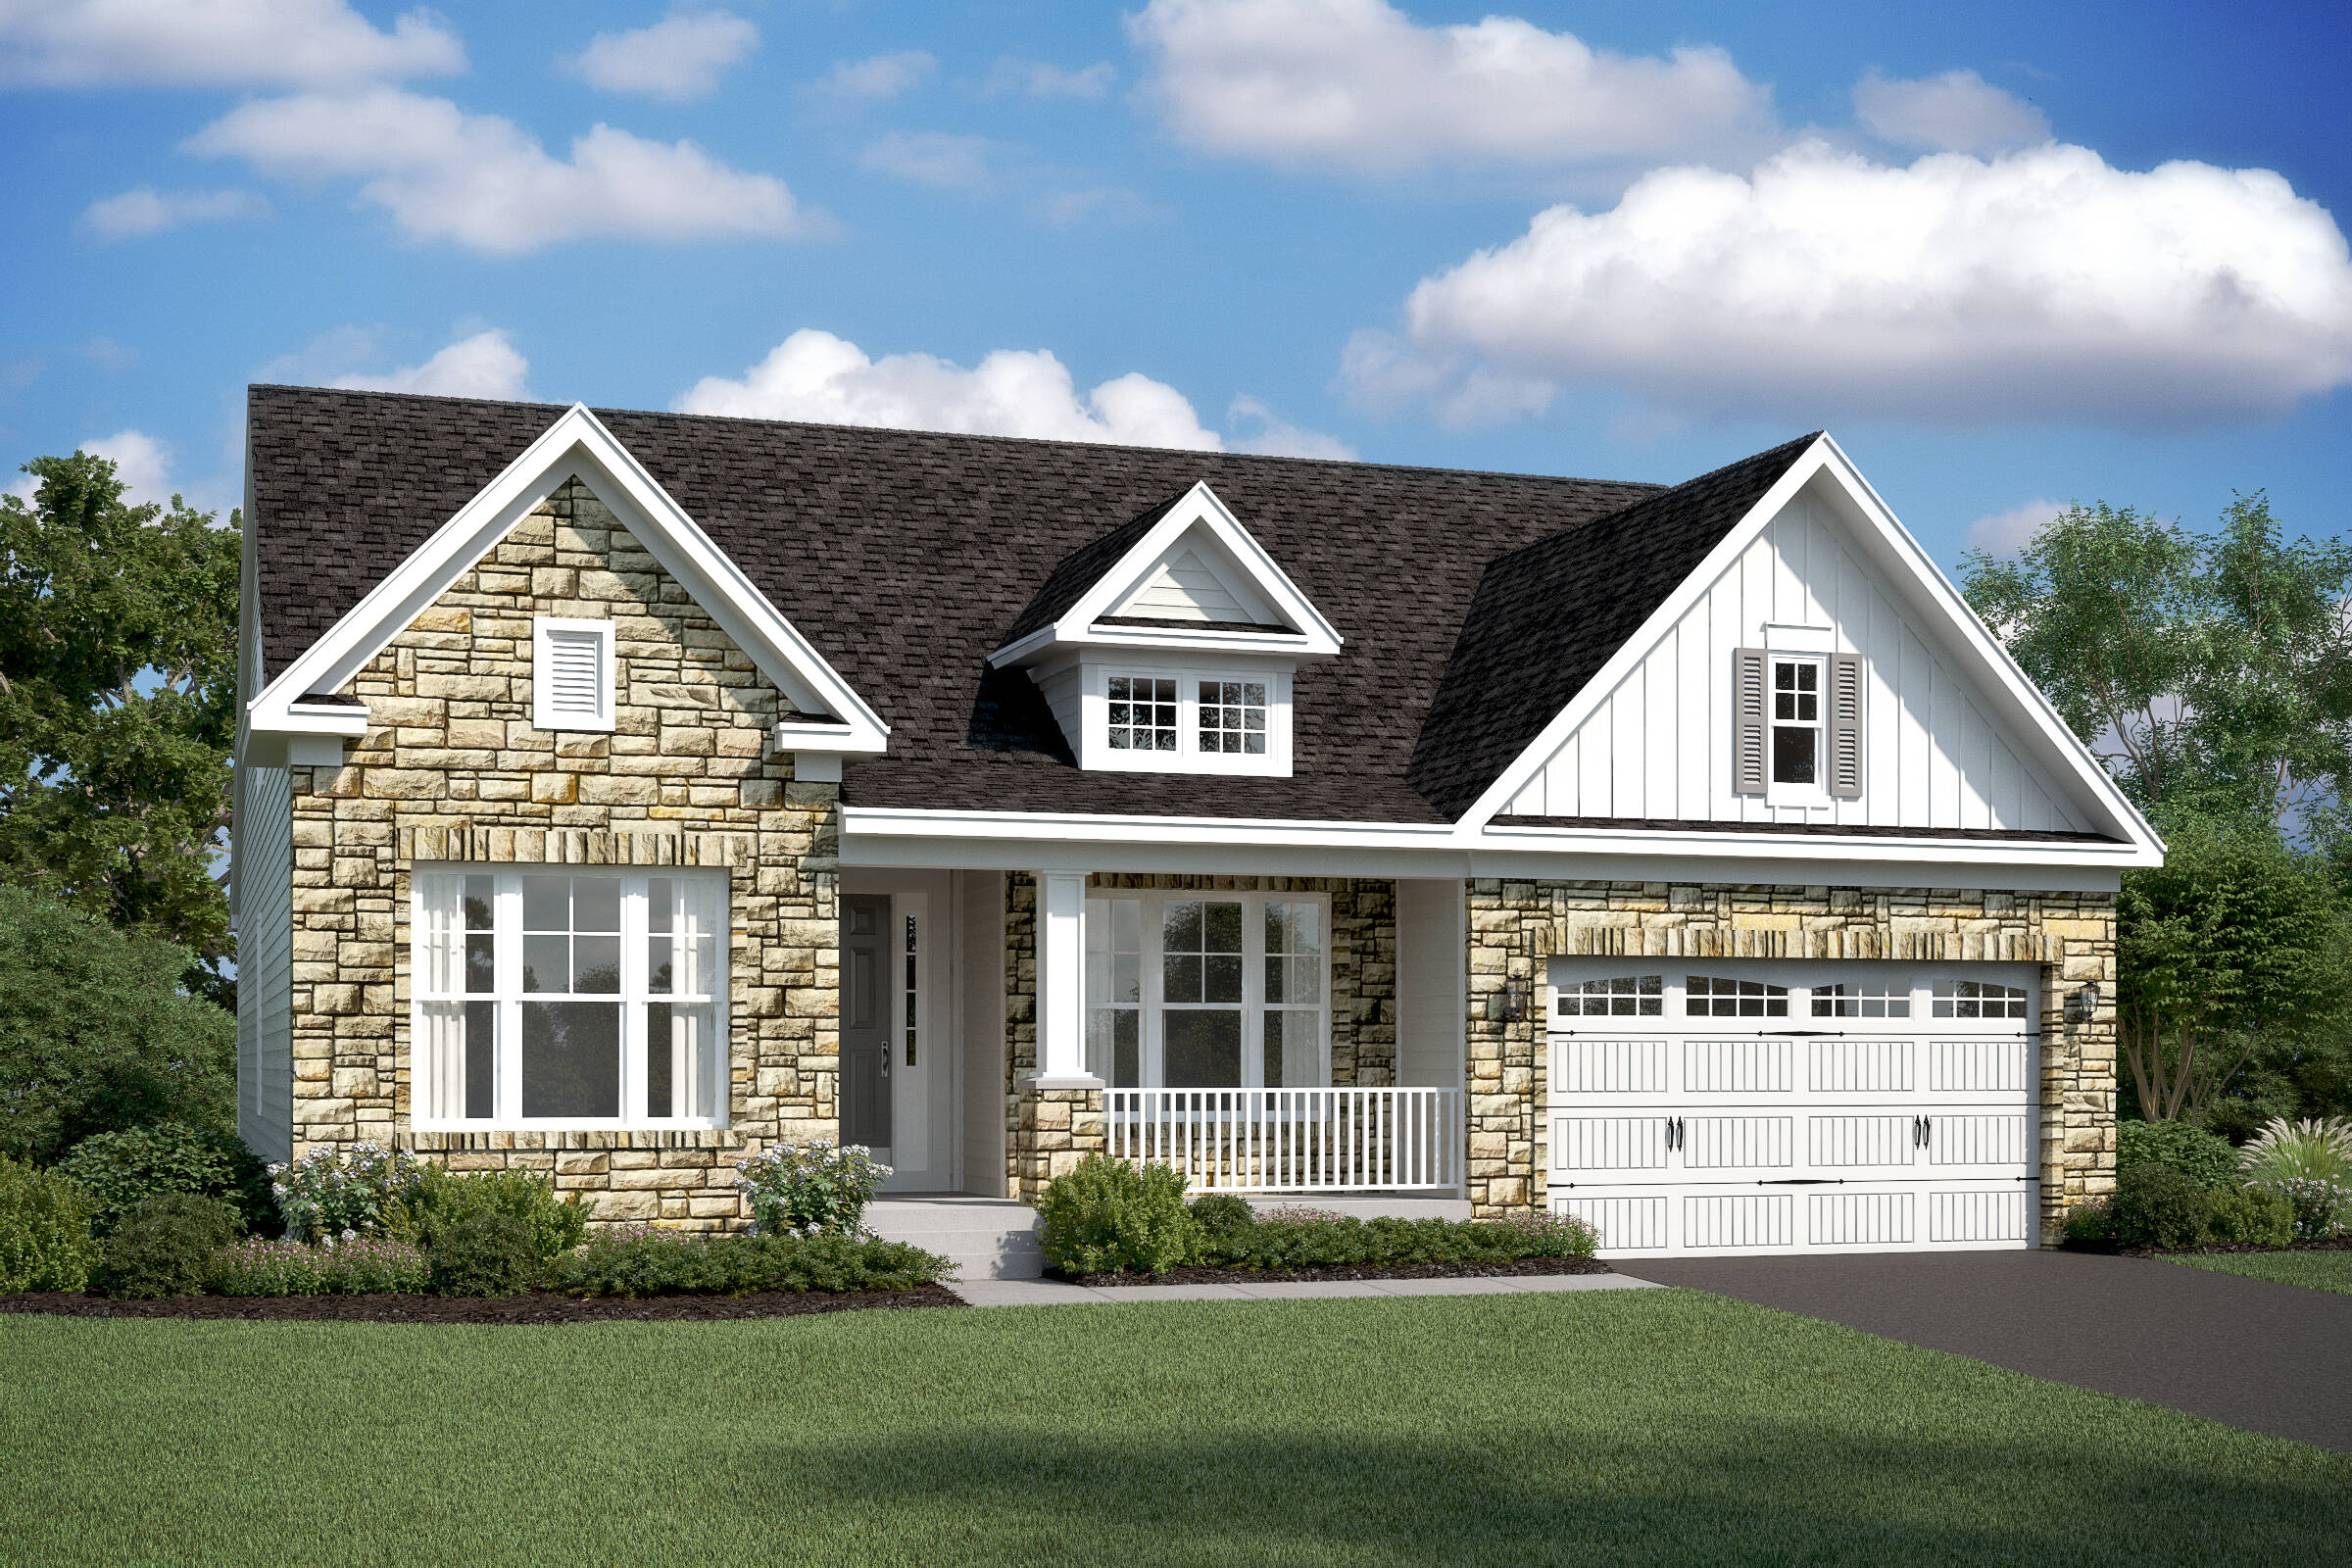 rockford jt new homes at red mill pond in delaware